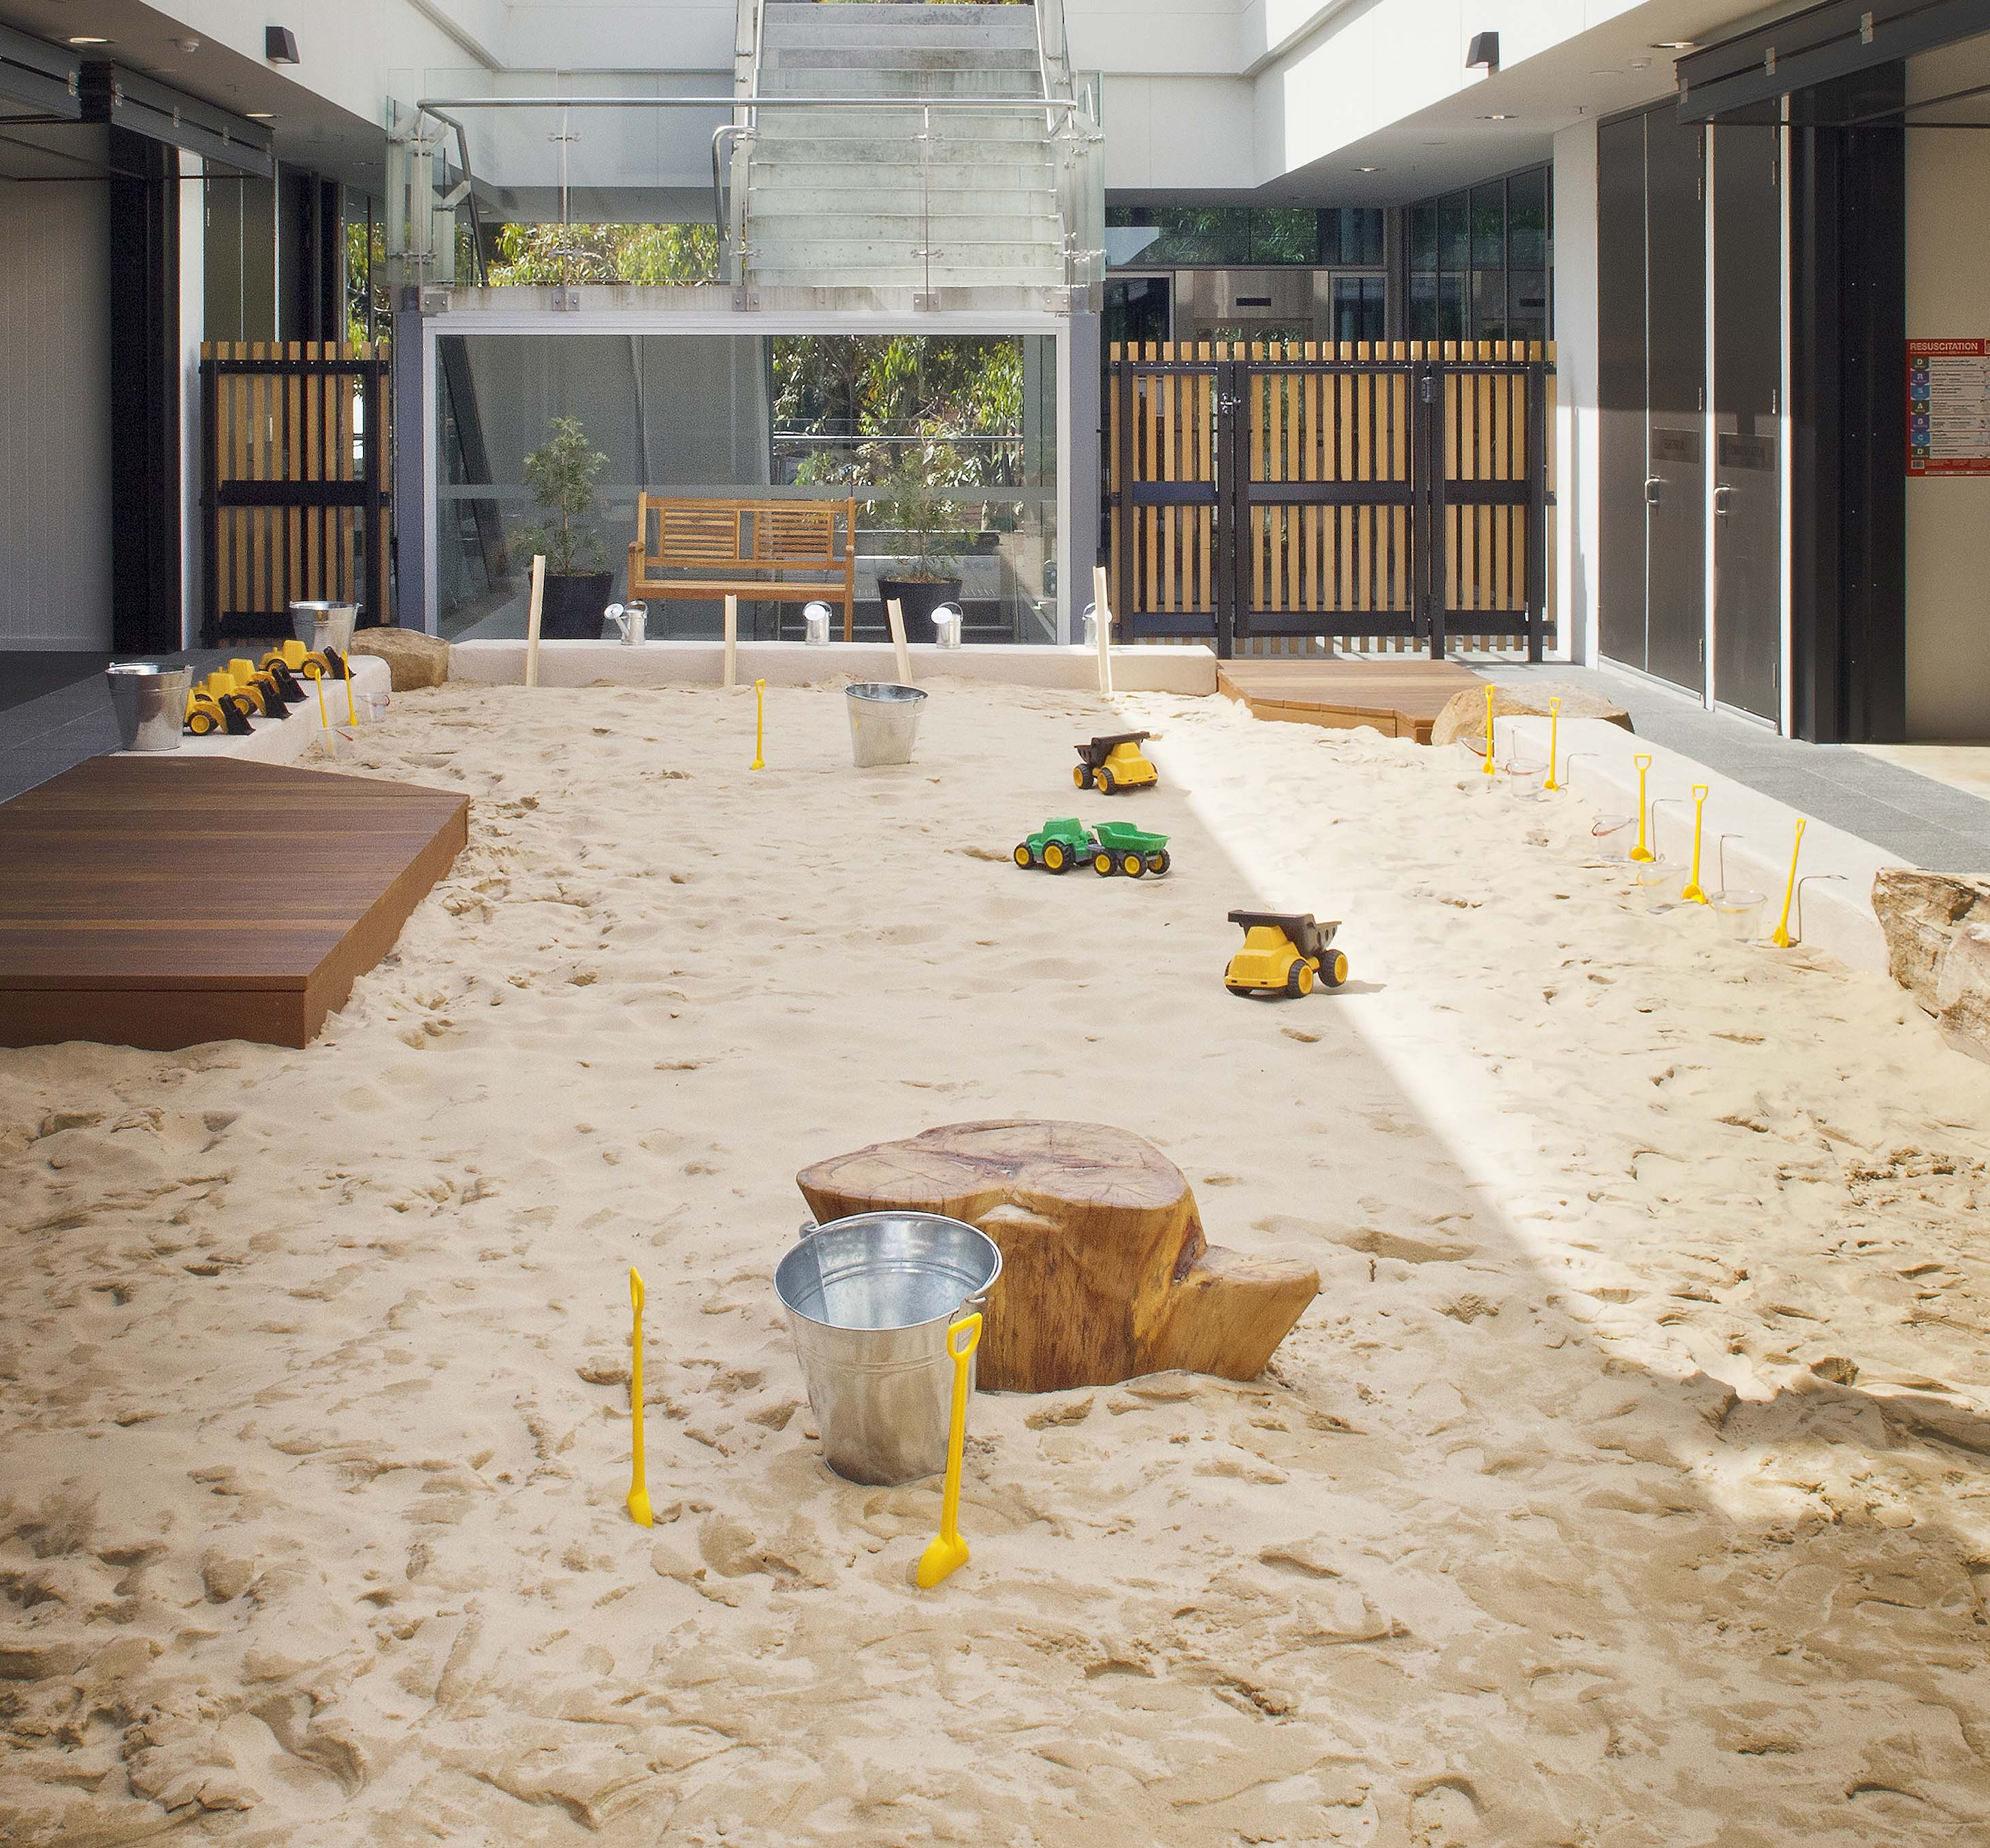 Sand Pit with Decks